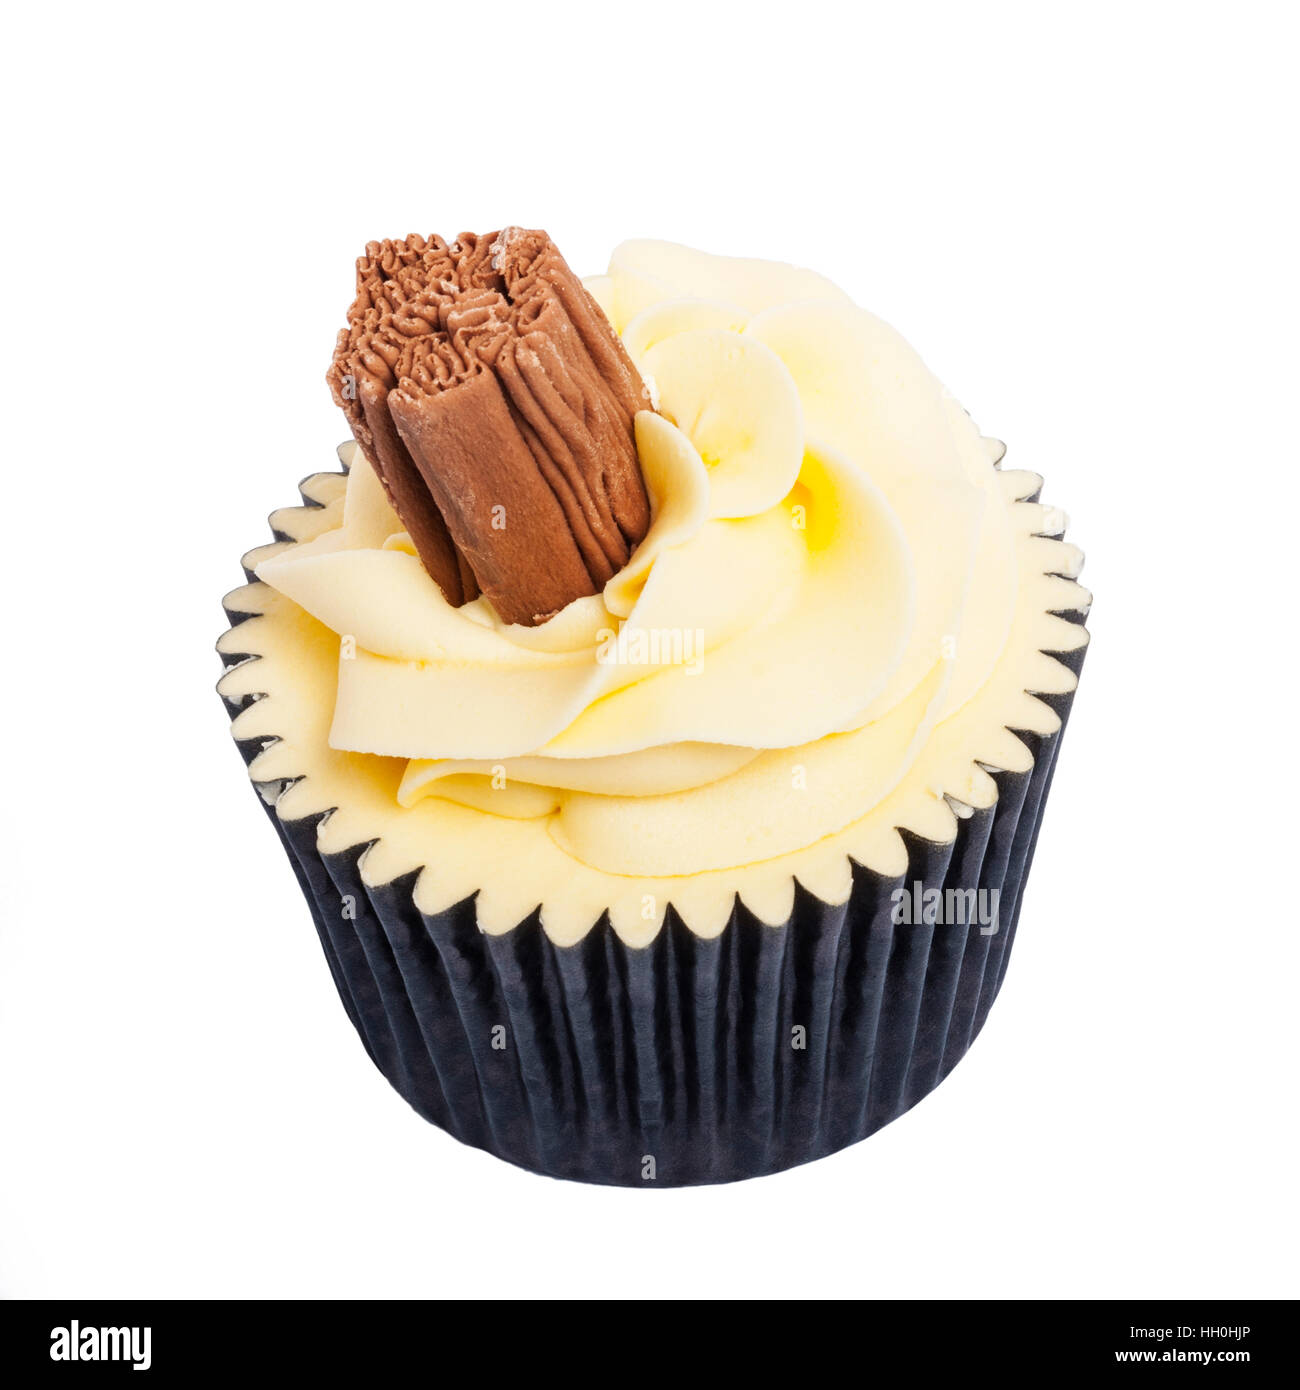 A home made vanilla cupcake on a white background - Stock Image